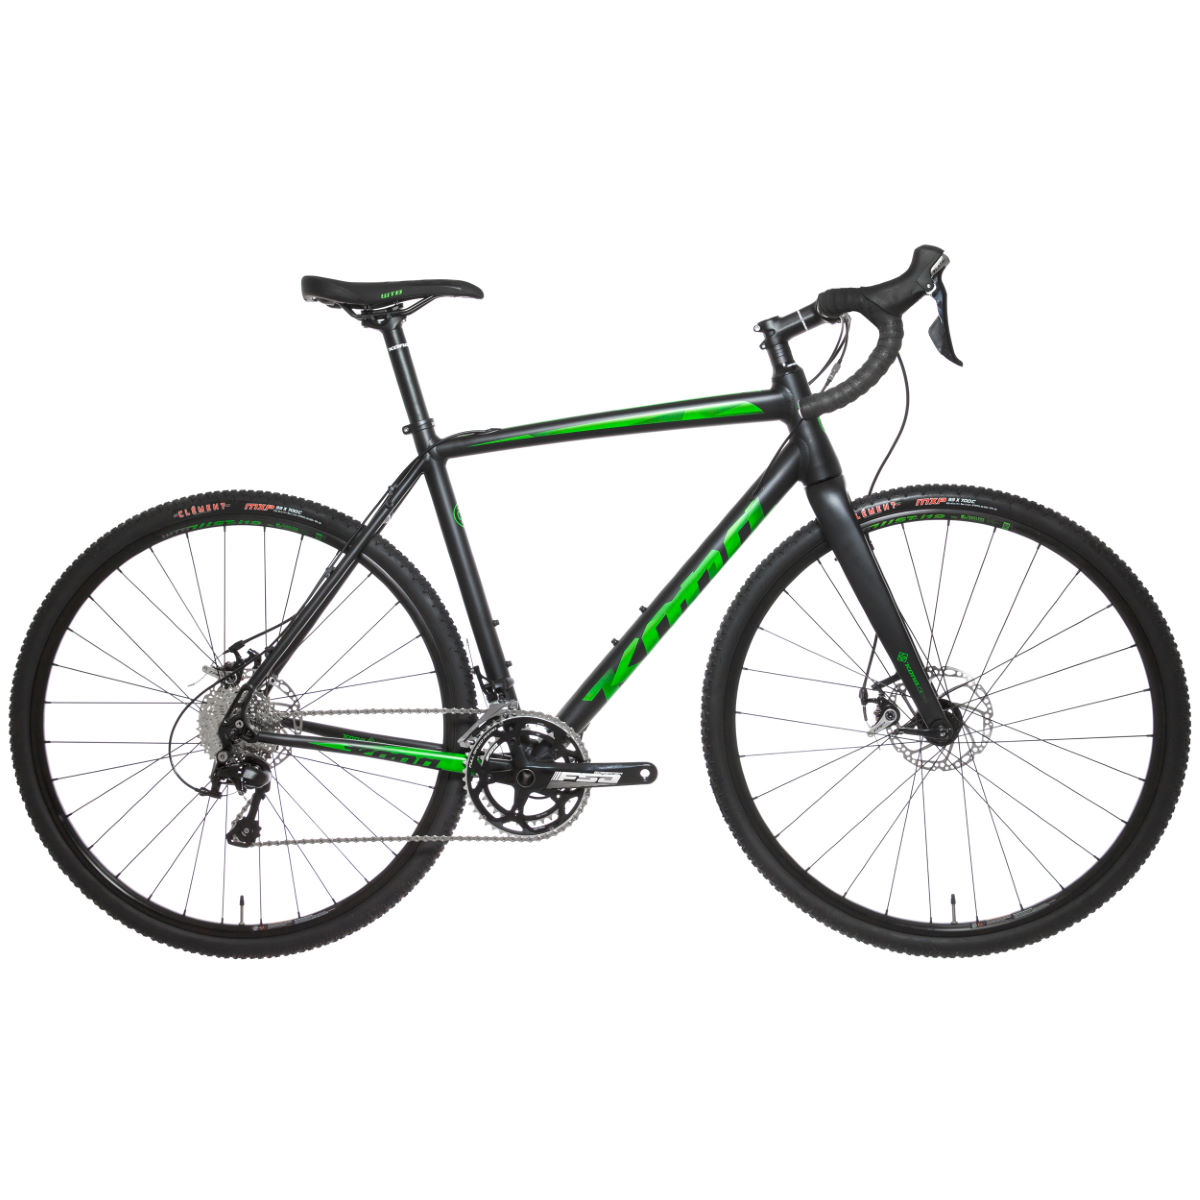 Vélo de cyclo-cross Kona Jake The Snake (2017) - 54cm Noir